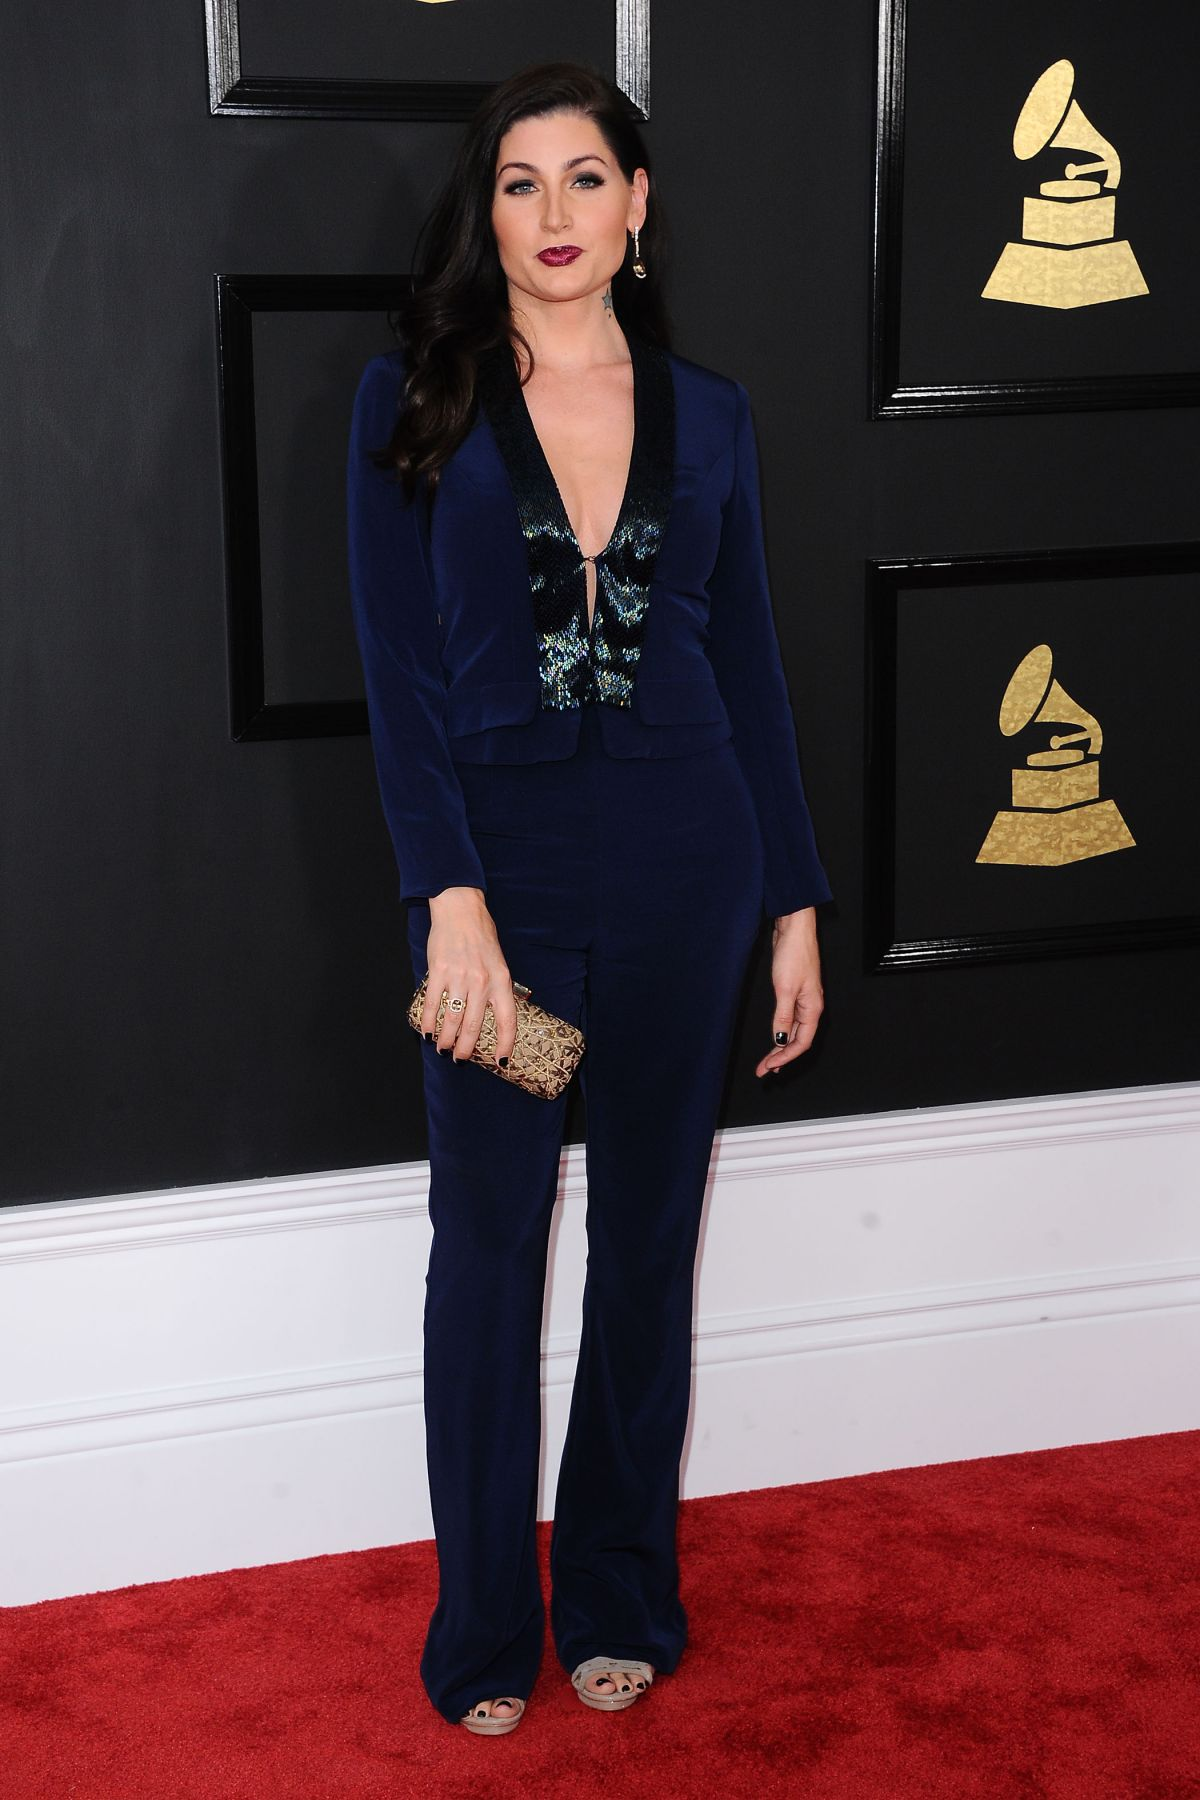 TRACE LYSETTE at 59th Annual Grammy Awards in Los Angeles 02/12/2017